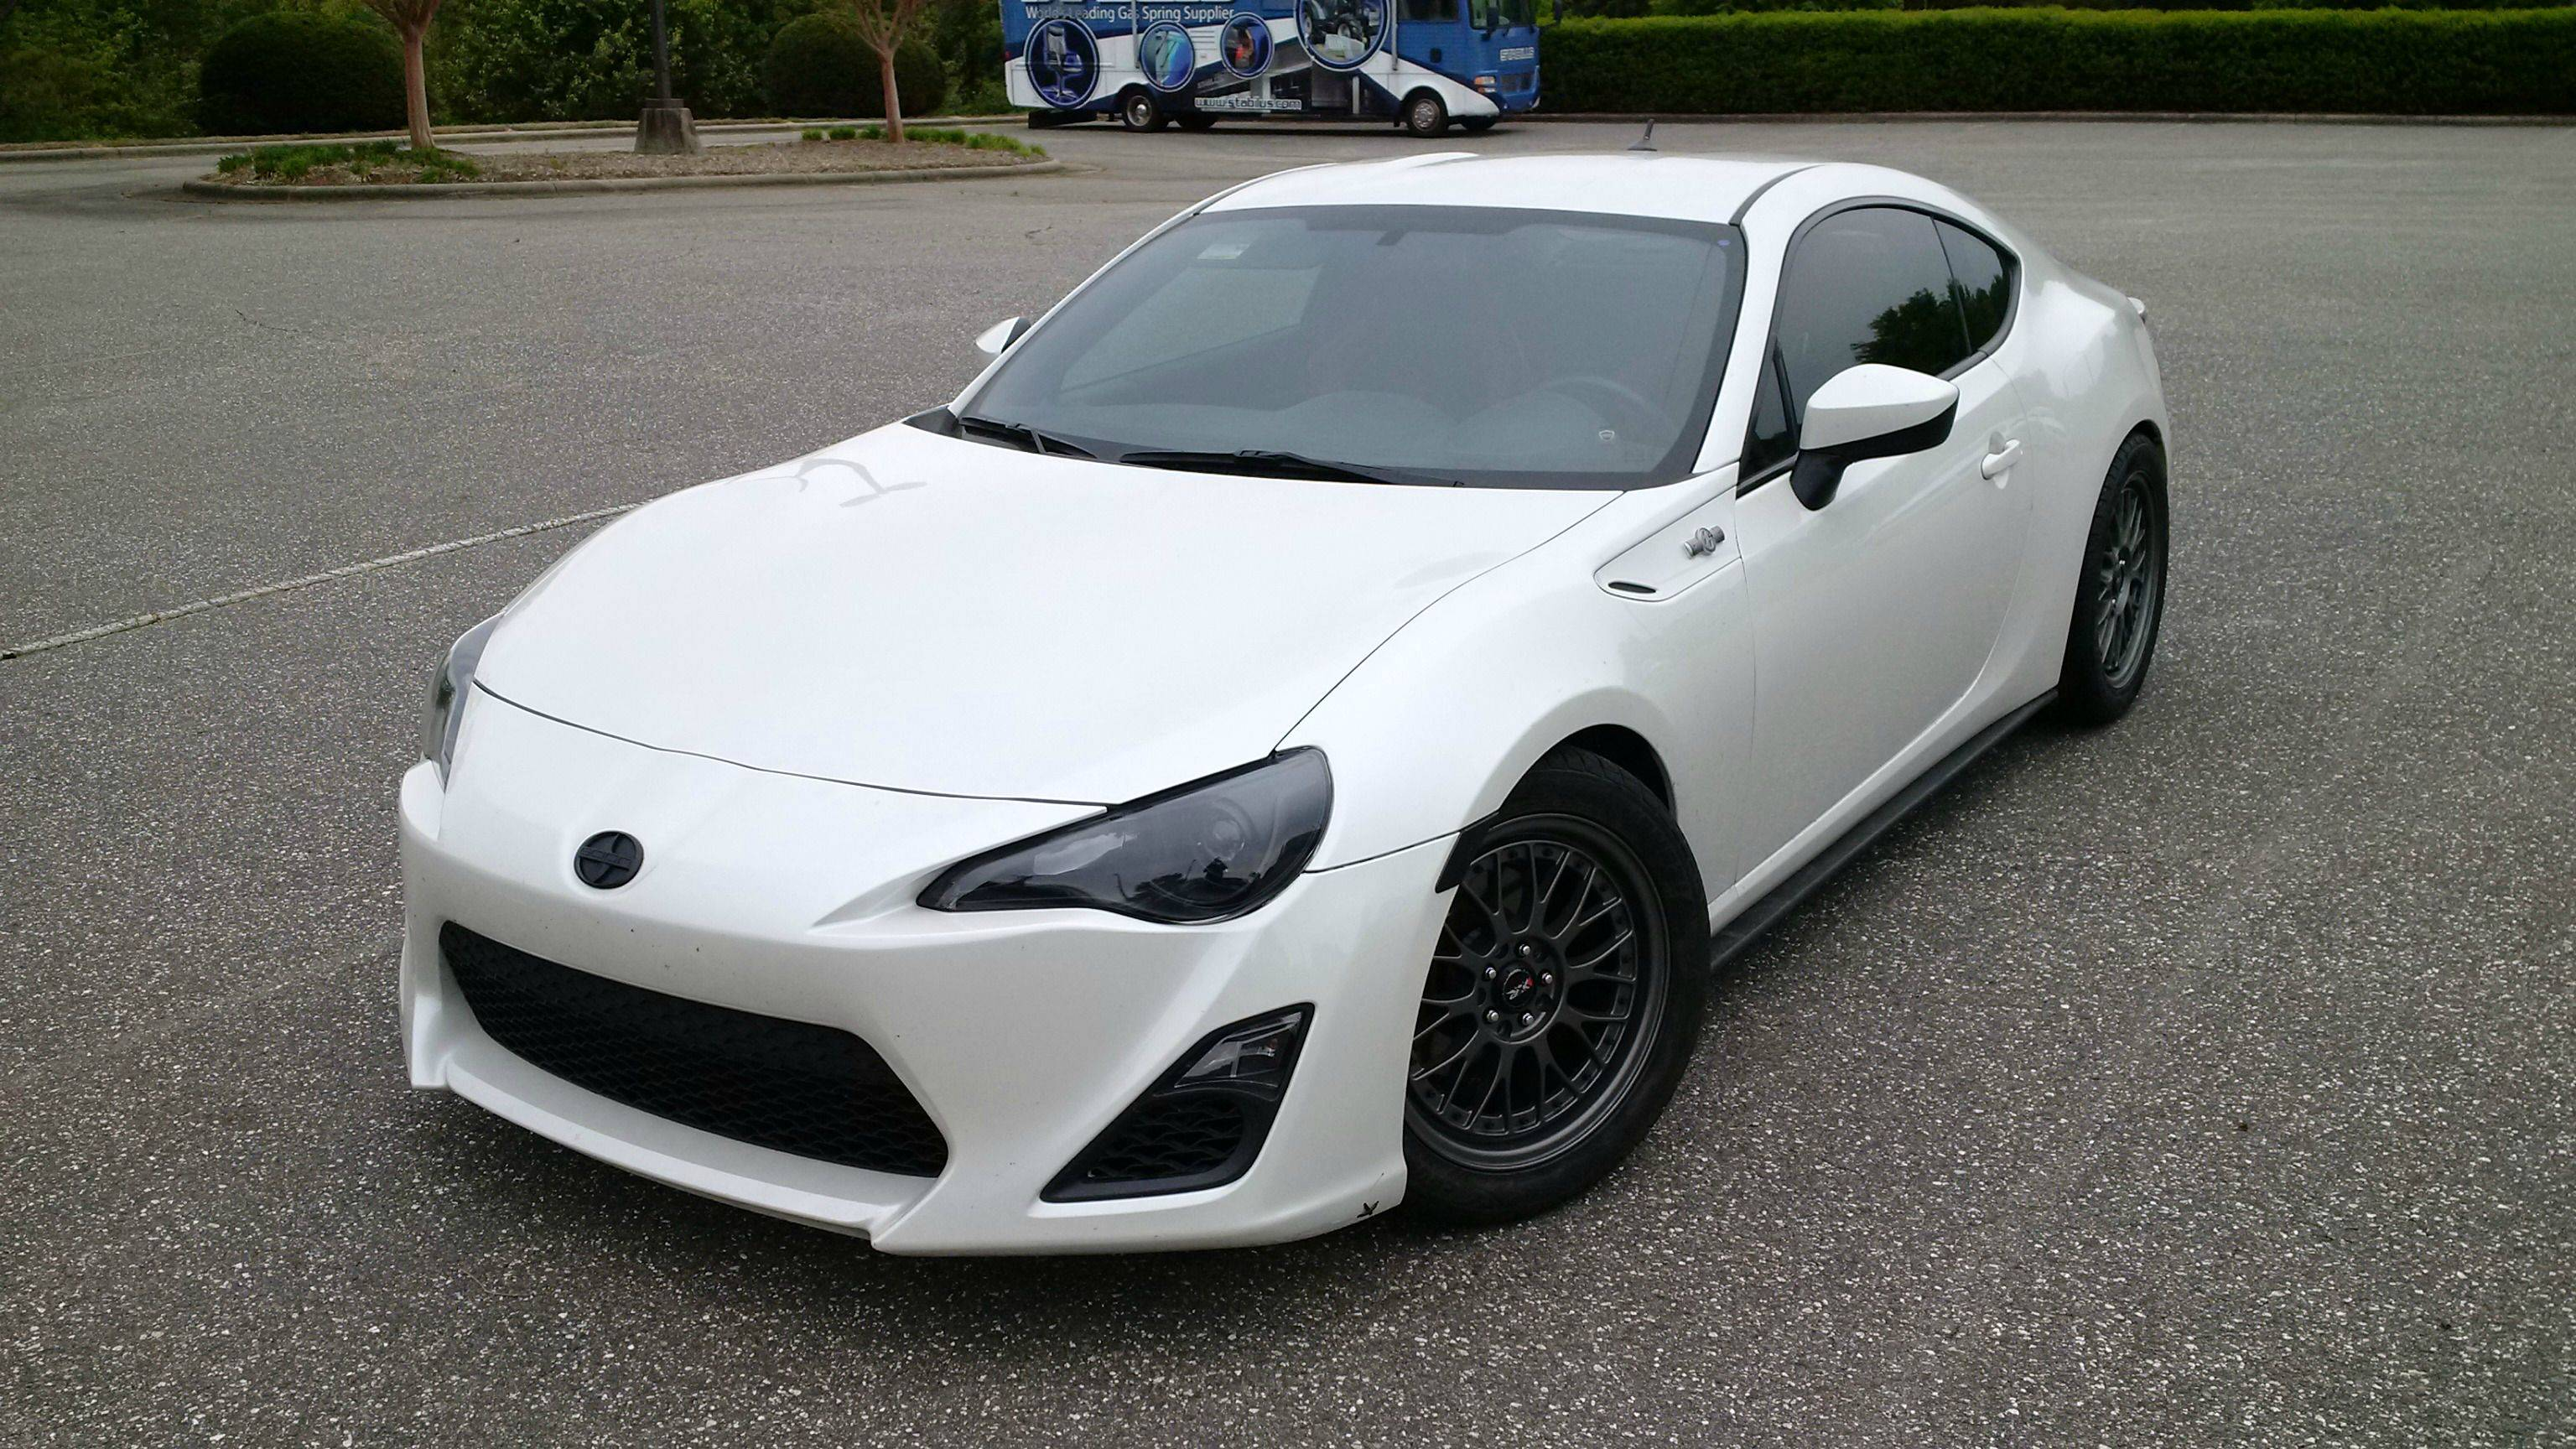 scion fr s custom wheels xxr 521 17x7 0 et 38 tire size 235 45 r17 x et. Black Bedroom Furniture Sets. Home Design Ideas